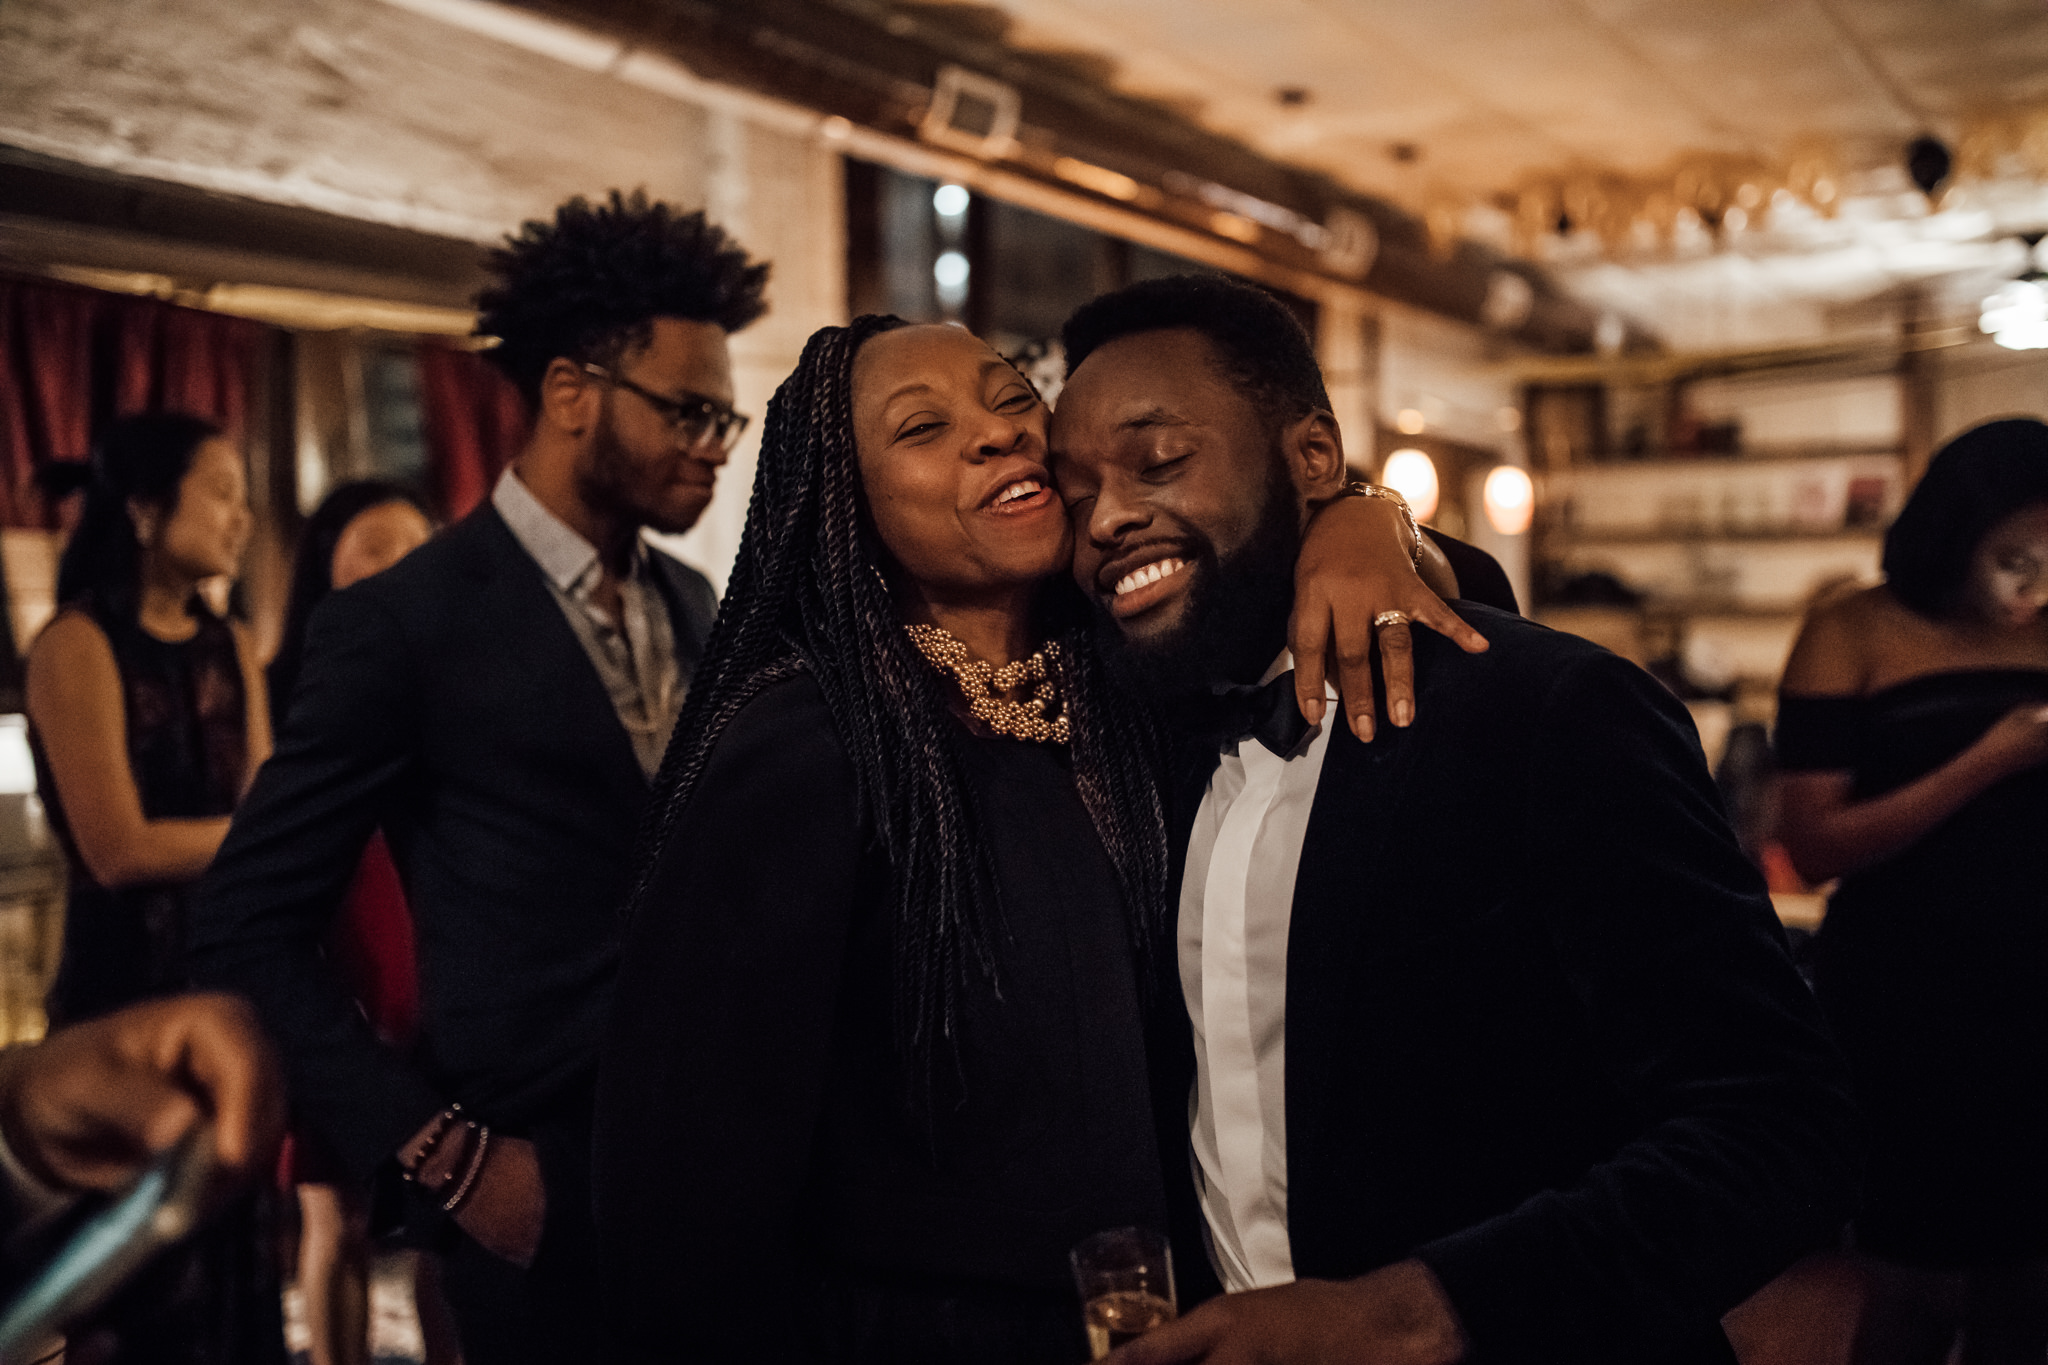 memphis-engagement-photographer-new-years-eve-proposal-cassie-cook-photography-20.jpg